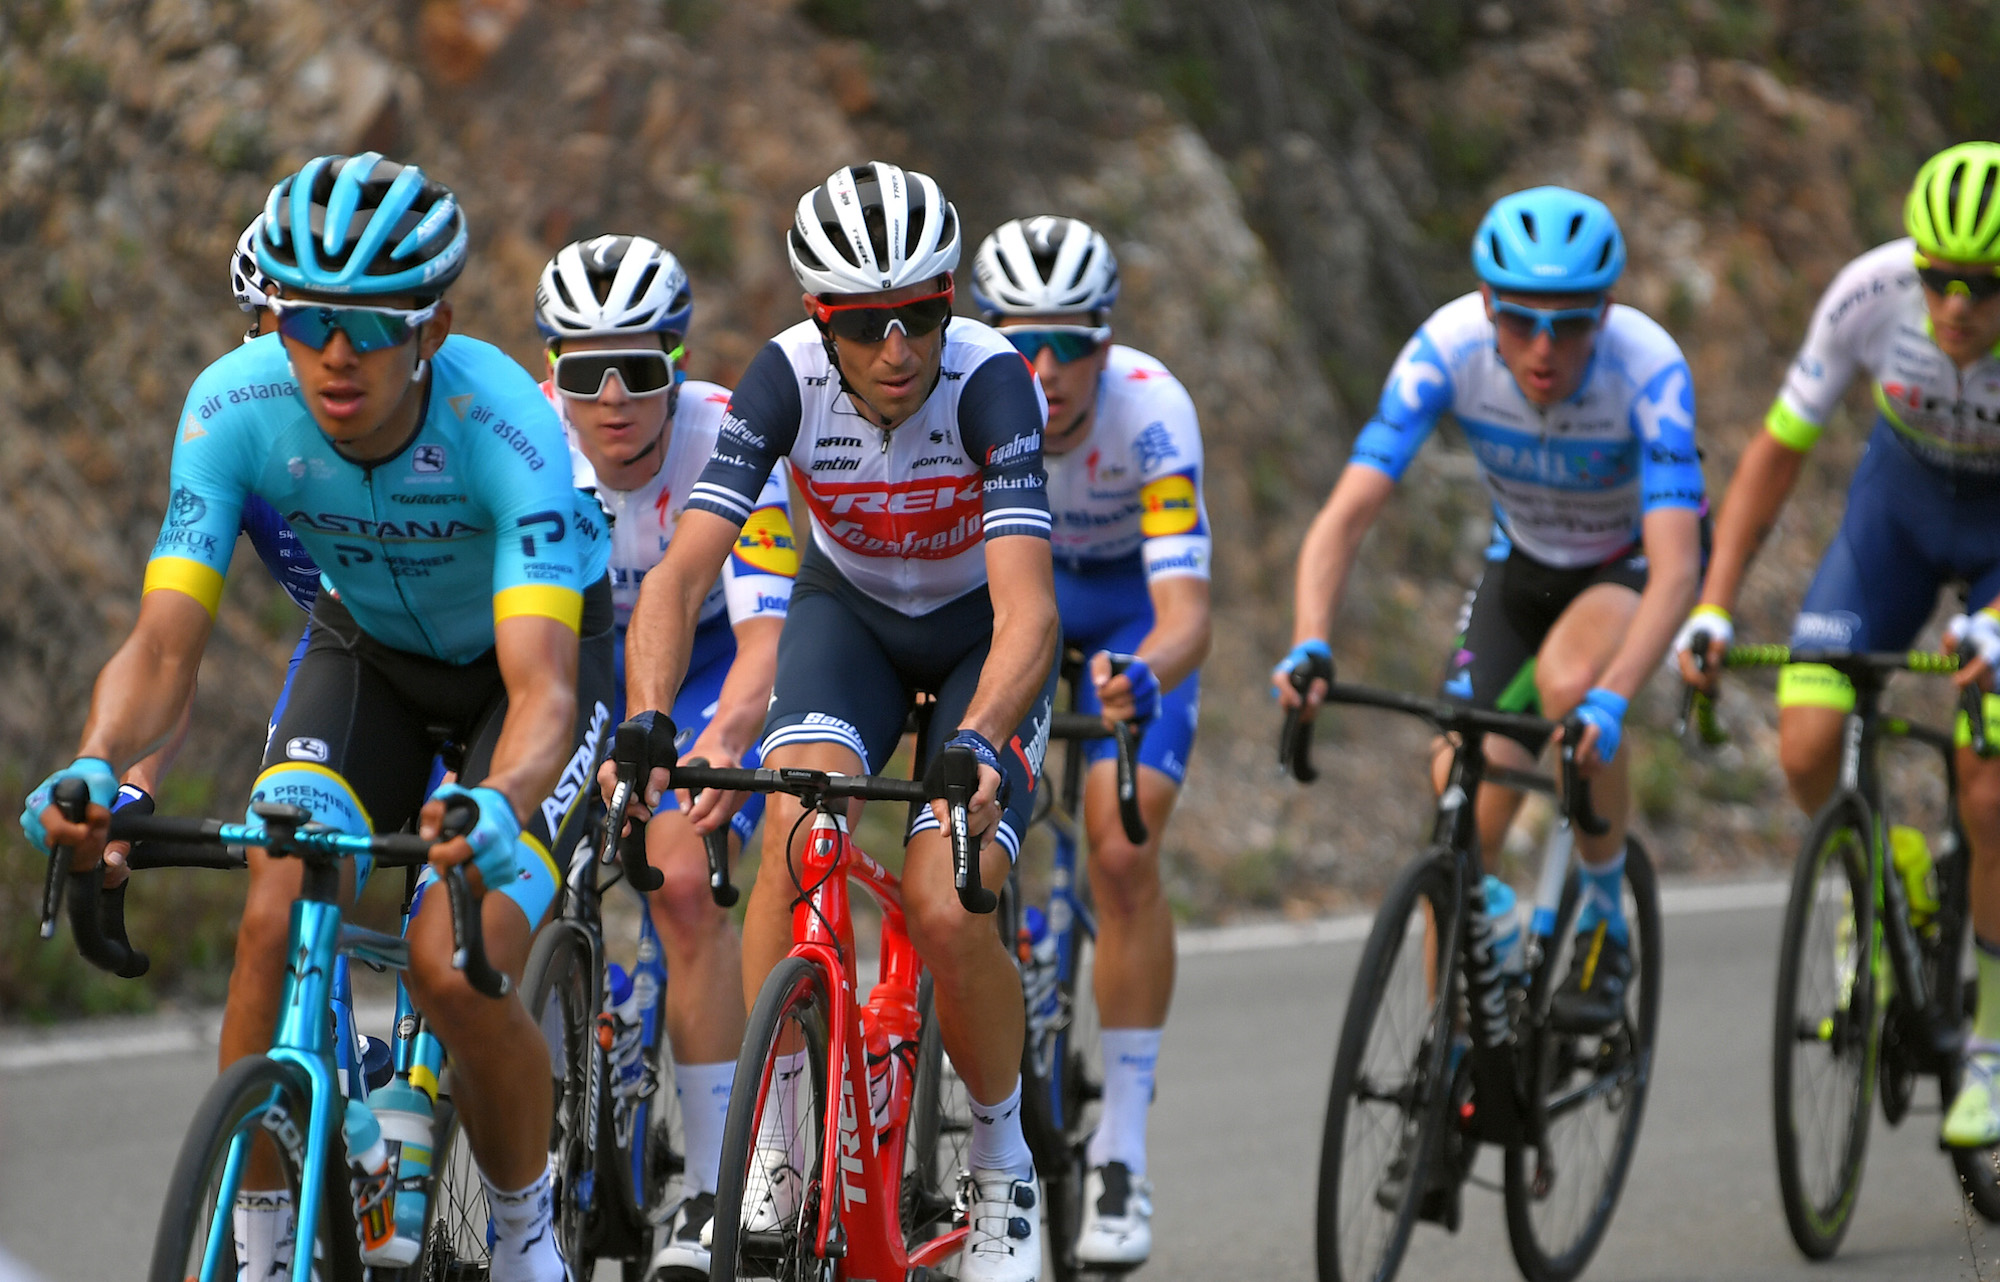 Vincenzo Nibali says Remco Evenepoel will be 'a real rival' at the Giro d'Italia - Cycling Weekly